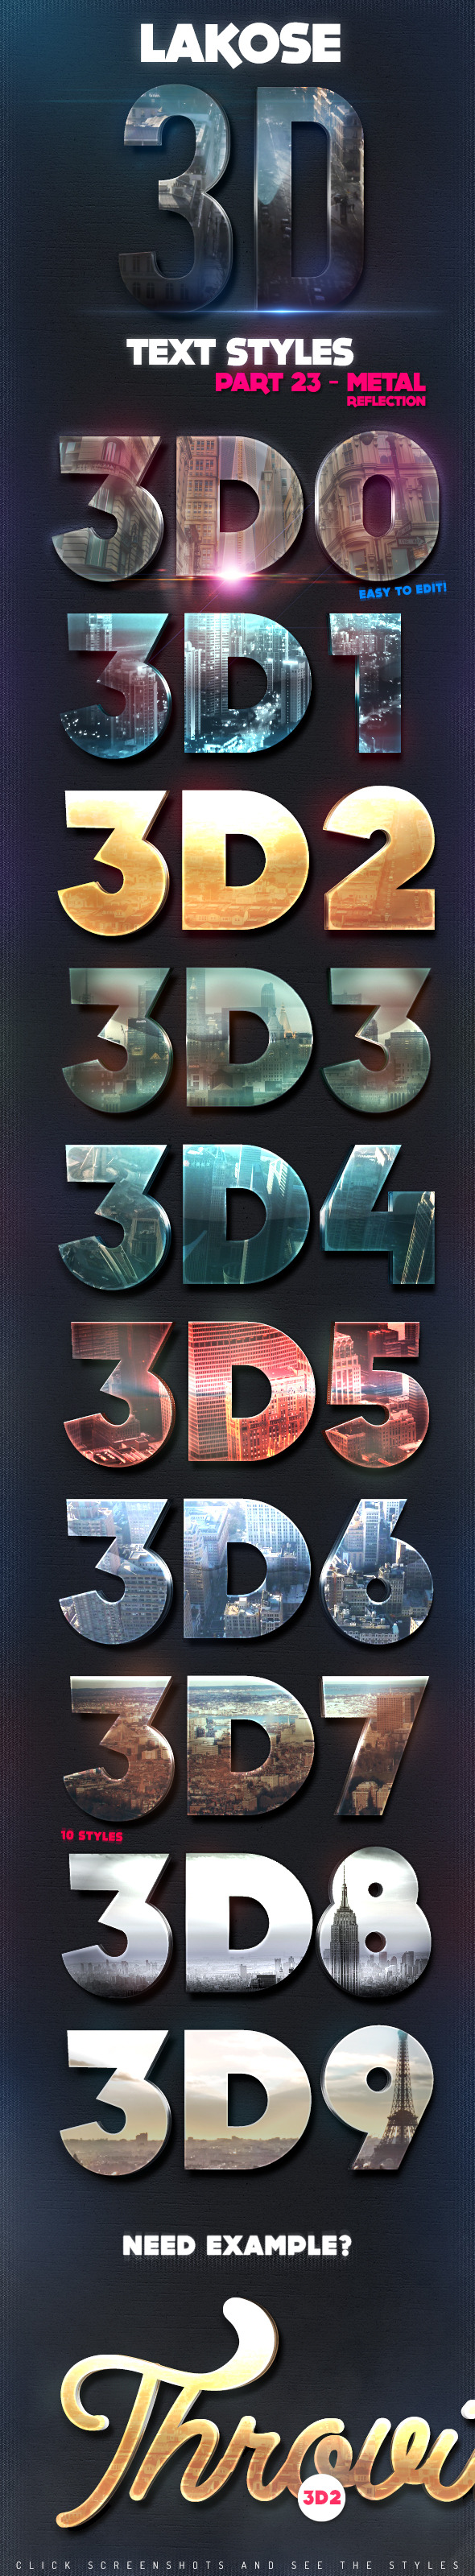 Lakose 3D Text Styles Part 23